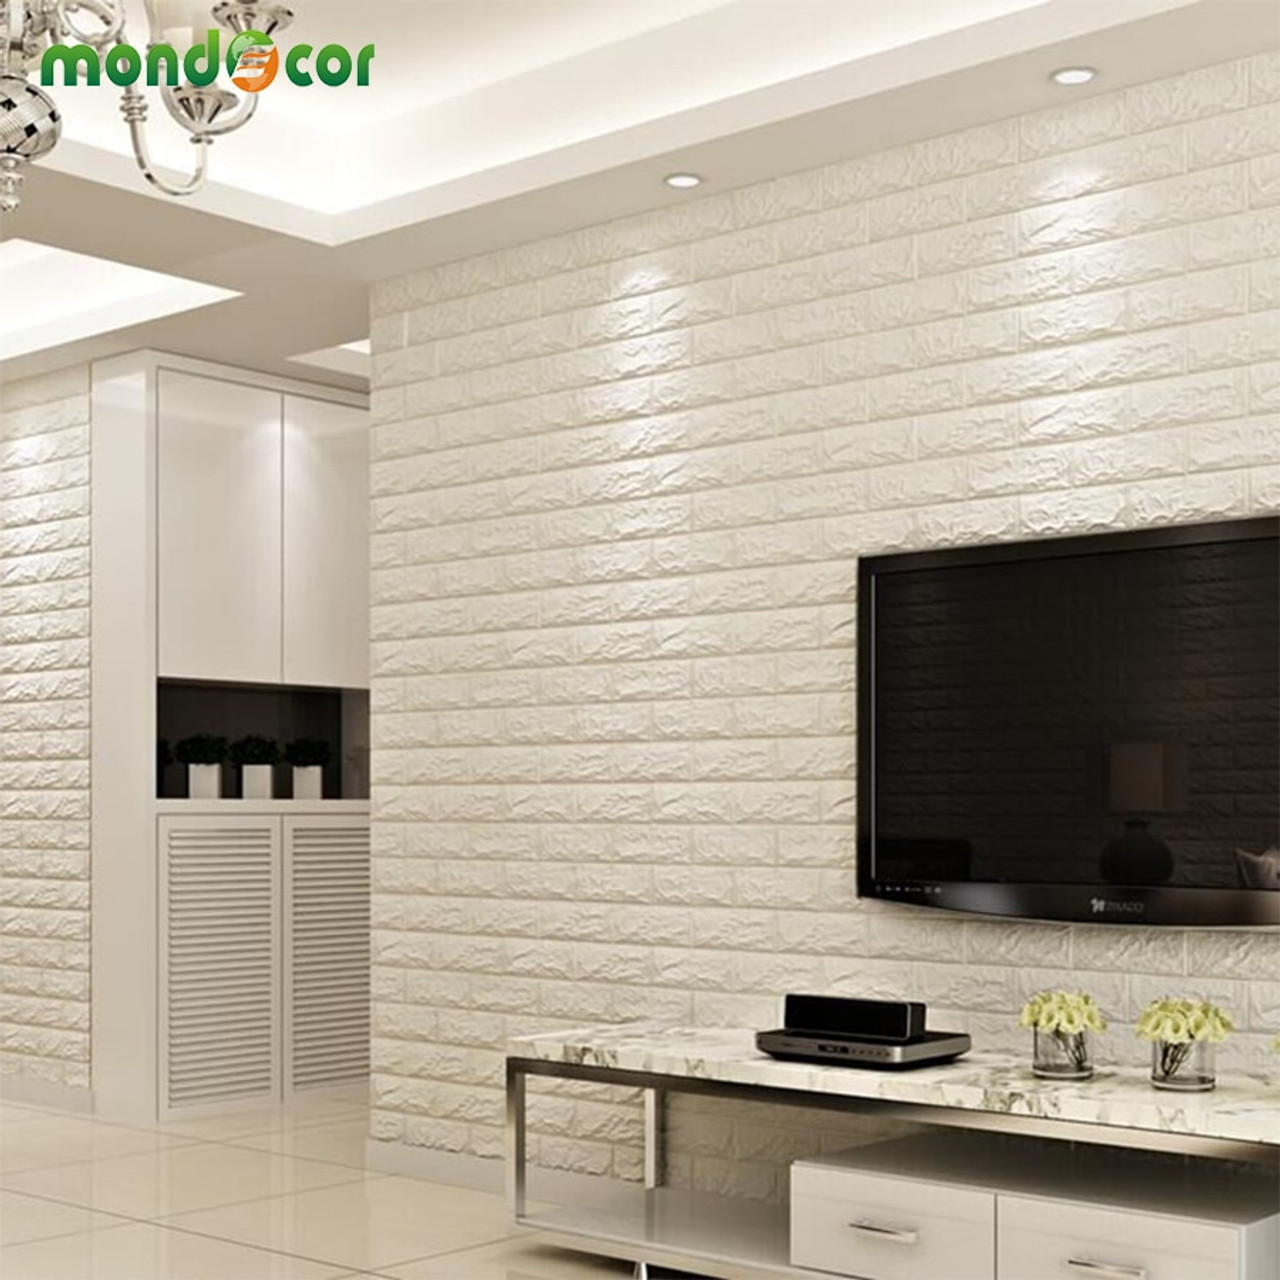 Diy Wall Panel Self Adhesive 3d Wall Sticker Living Room Bedroom Decor Waterproof Wall Covering 3d Brick Wallpaper For Kids Room